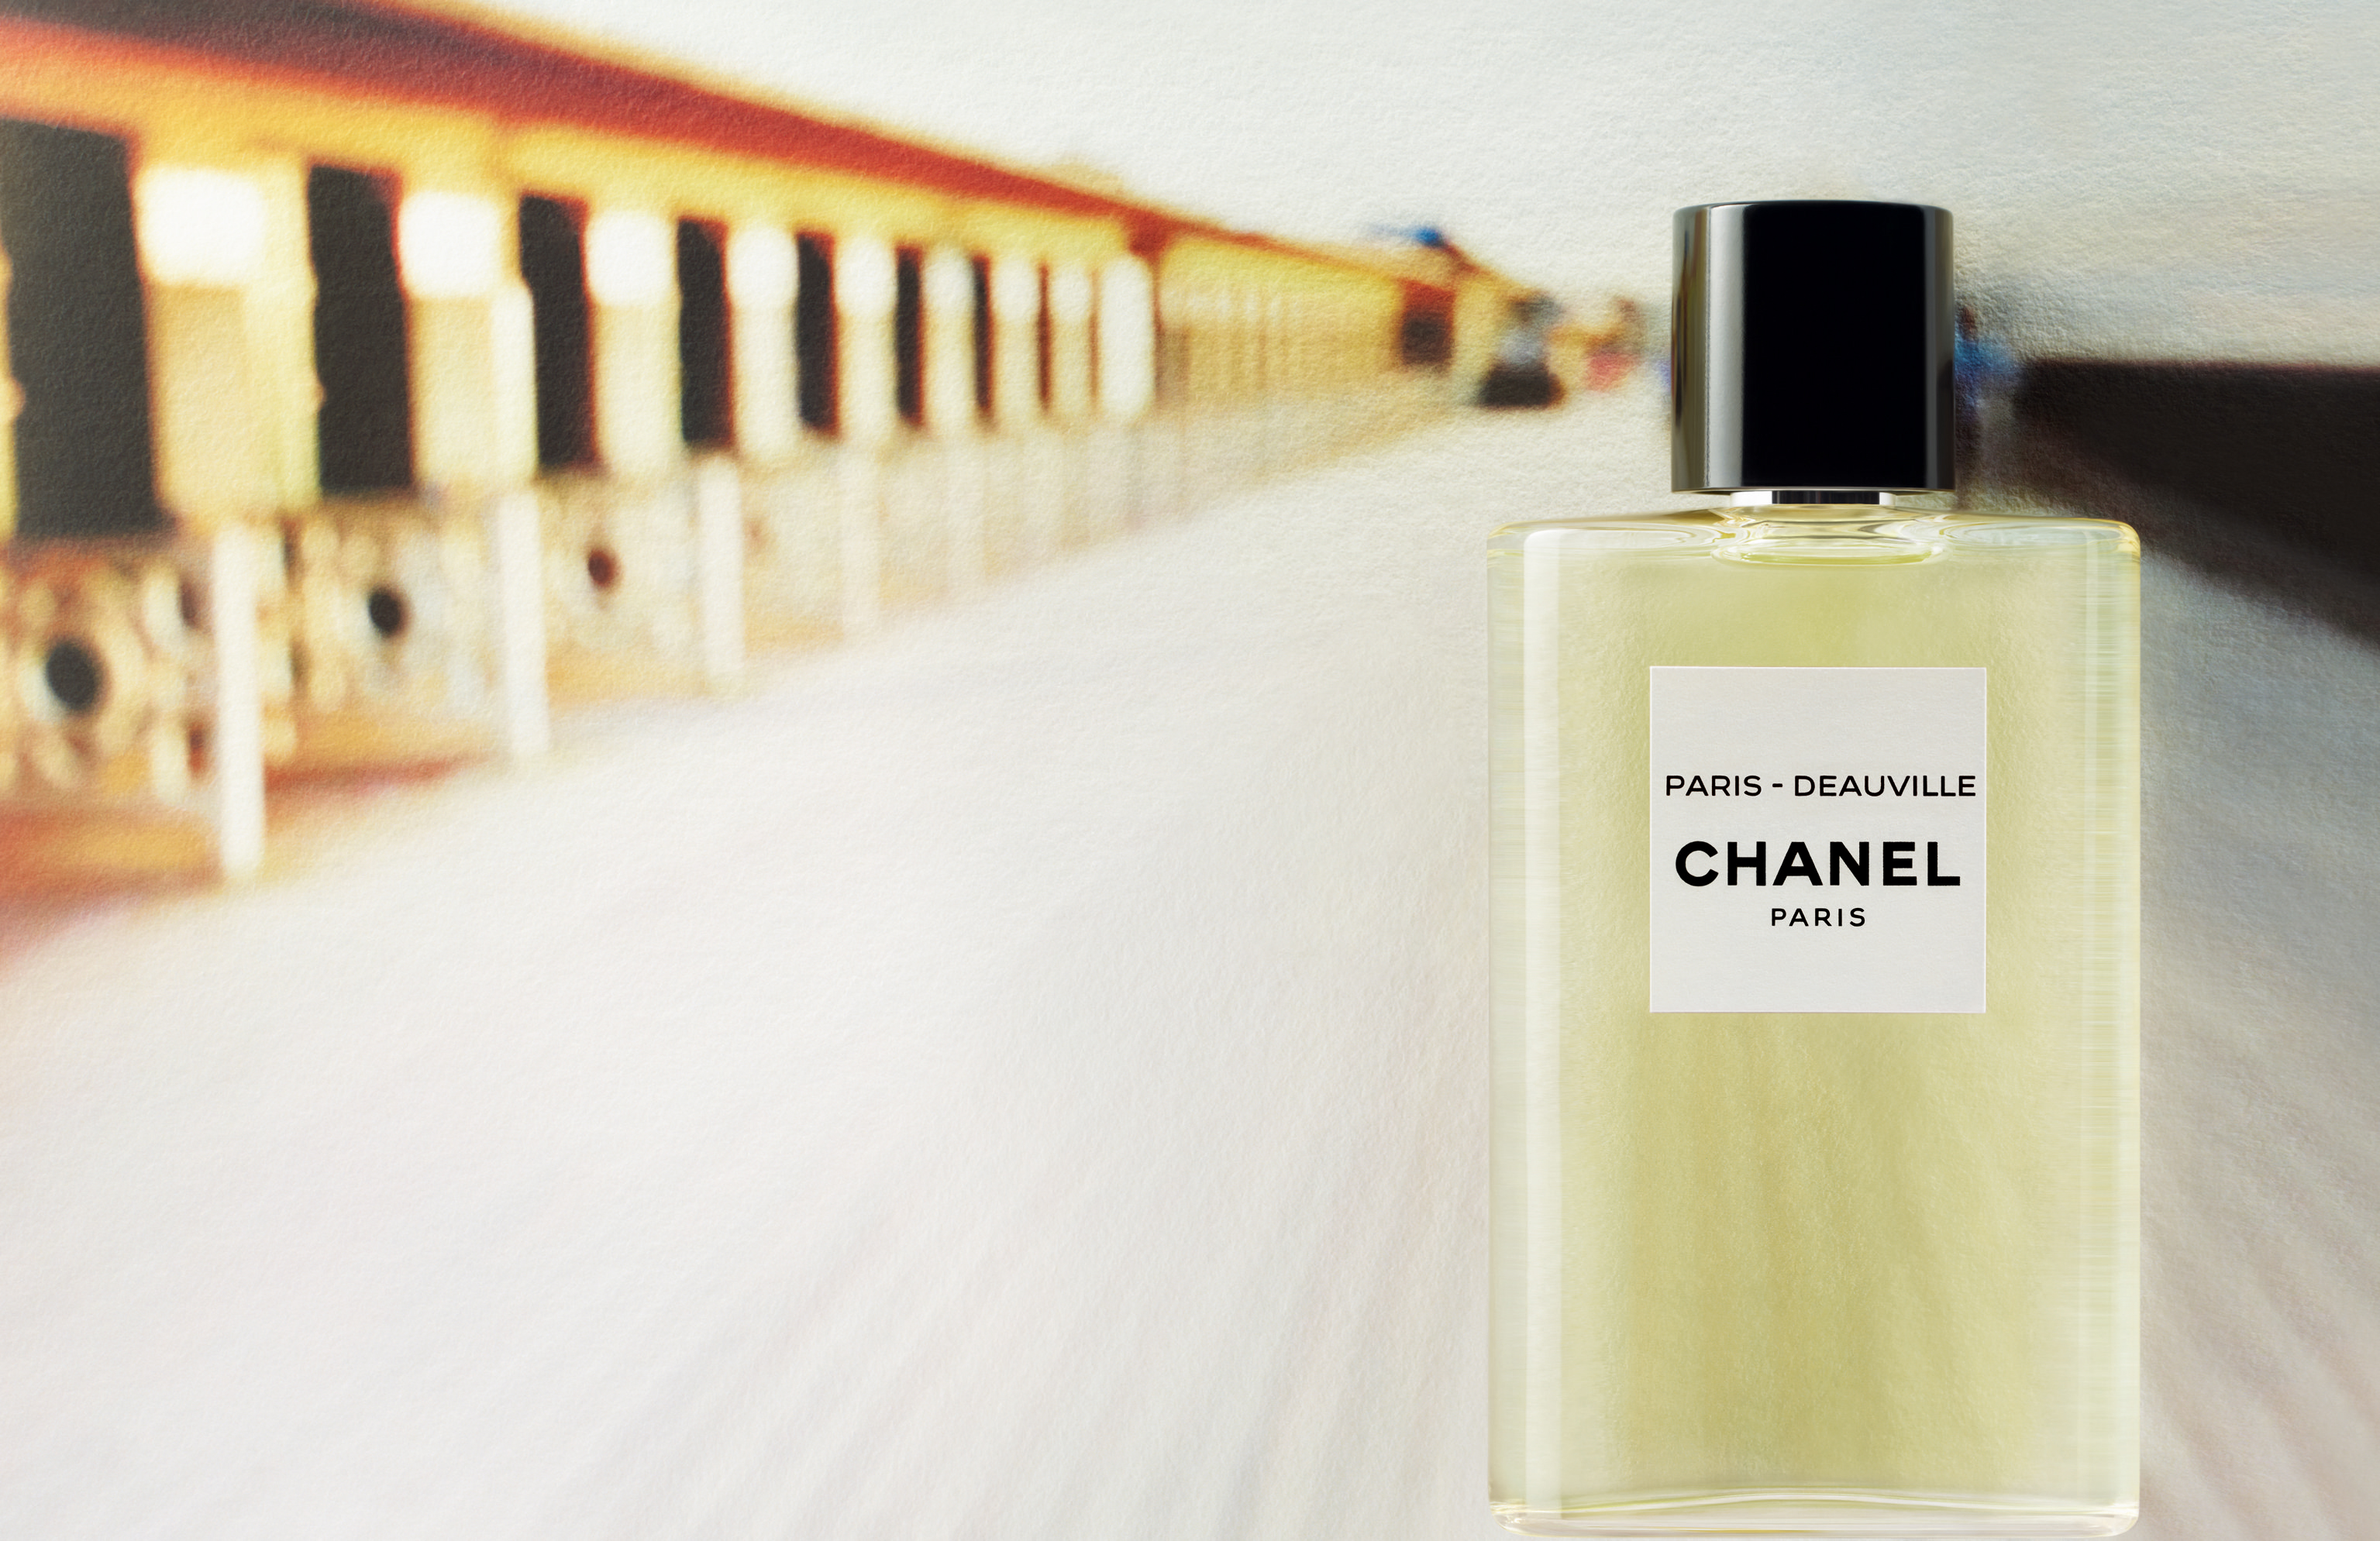 42fe3c53c0 Paris – Deauville Chanel for women and men